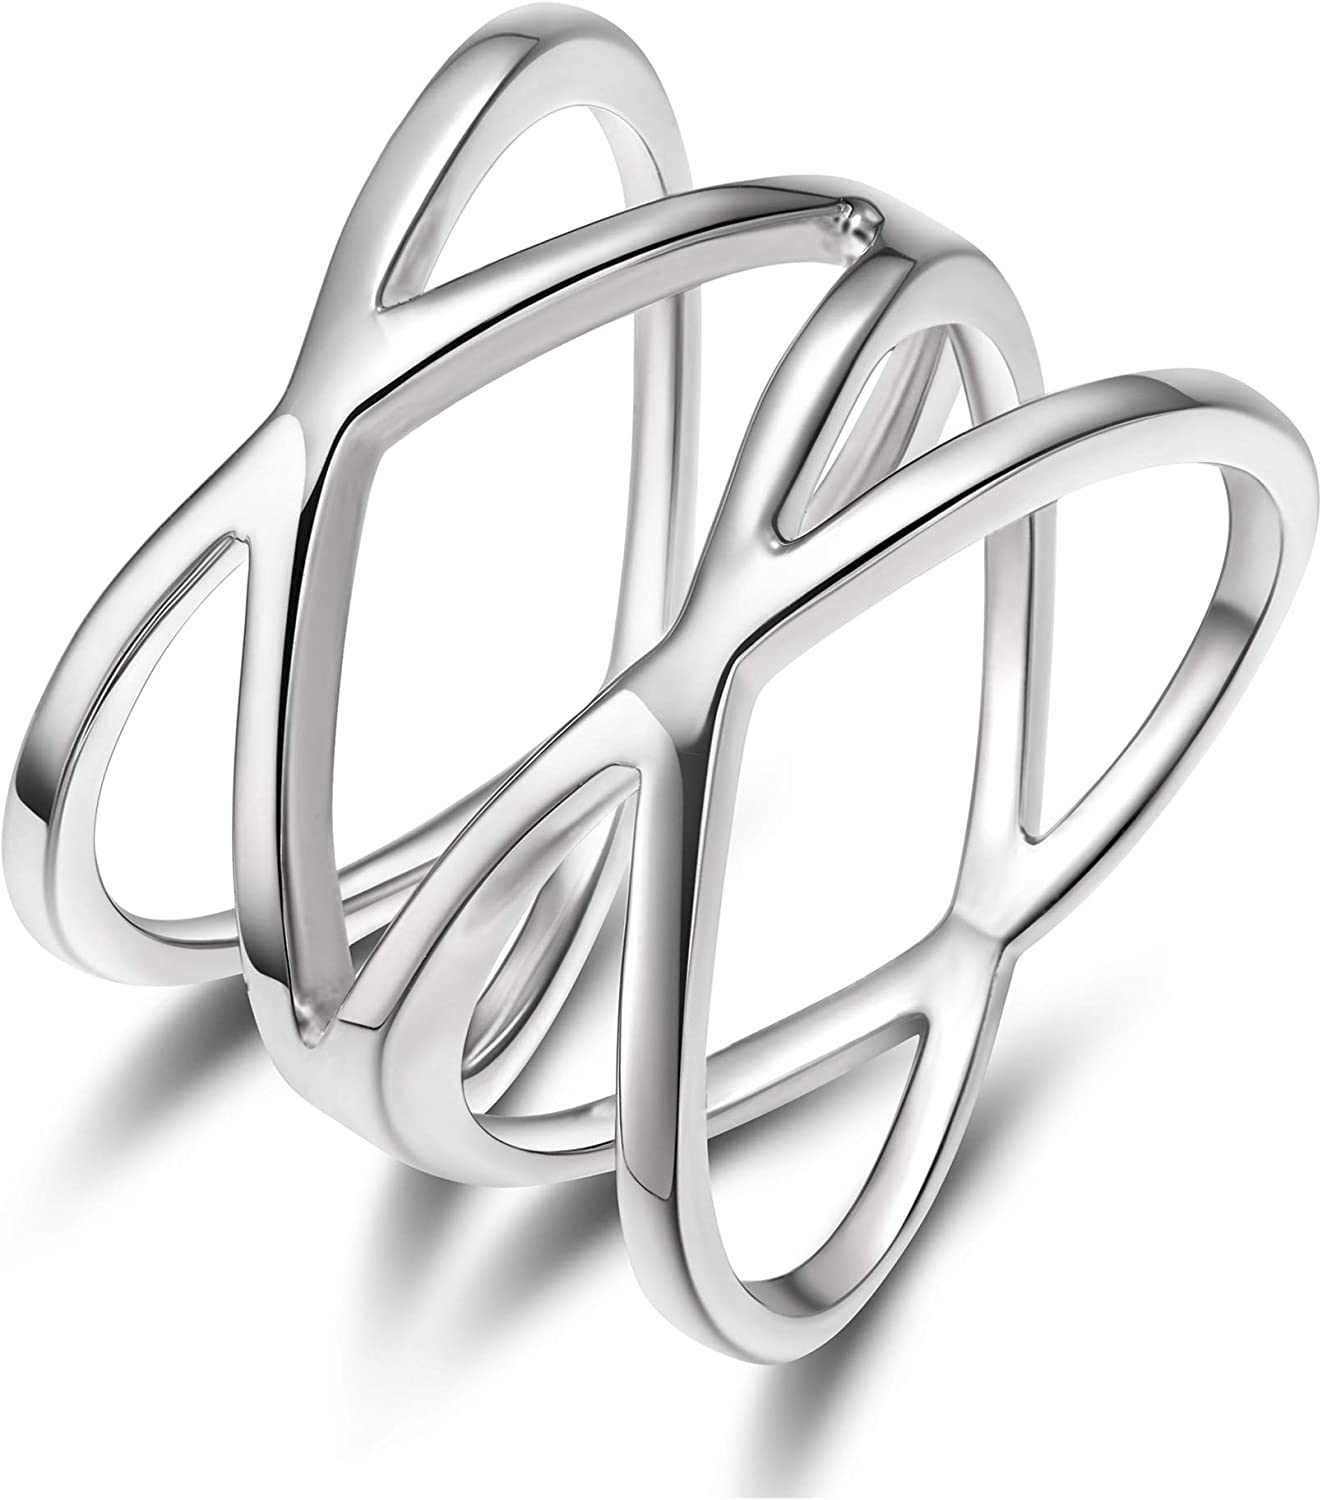 SOMEN TUNGSTEN Double X Criss Cross Ring 925 Sterling Silver Wide Knuckle Stackable Ring Band for Women High Polished Size 5-12